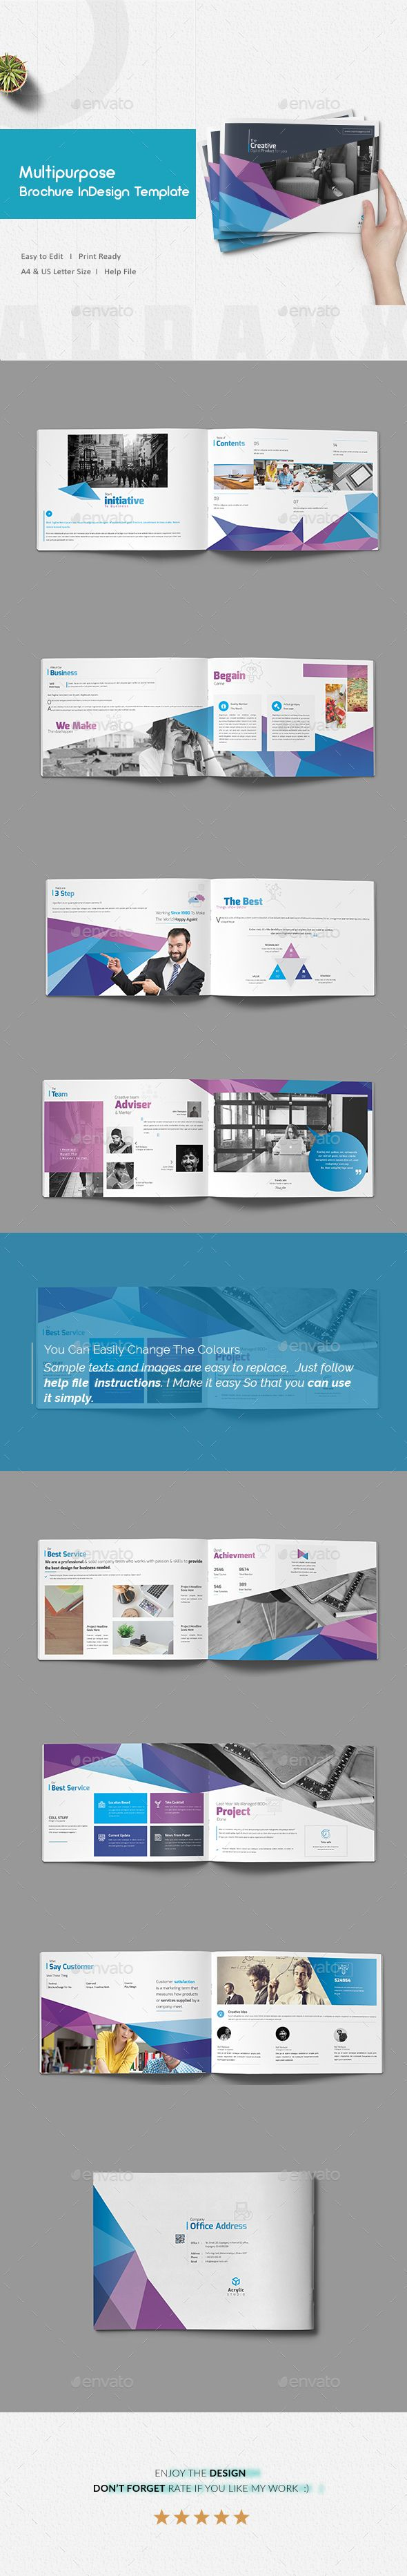 best 25+ indesign templates ideas on pinterest | portfolio layout, Powerpoint templates